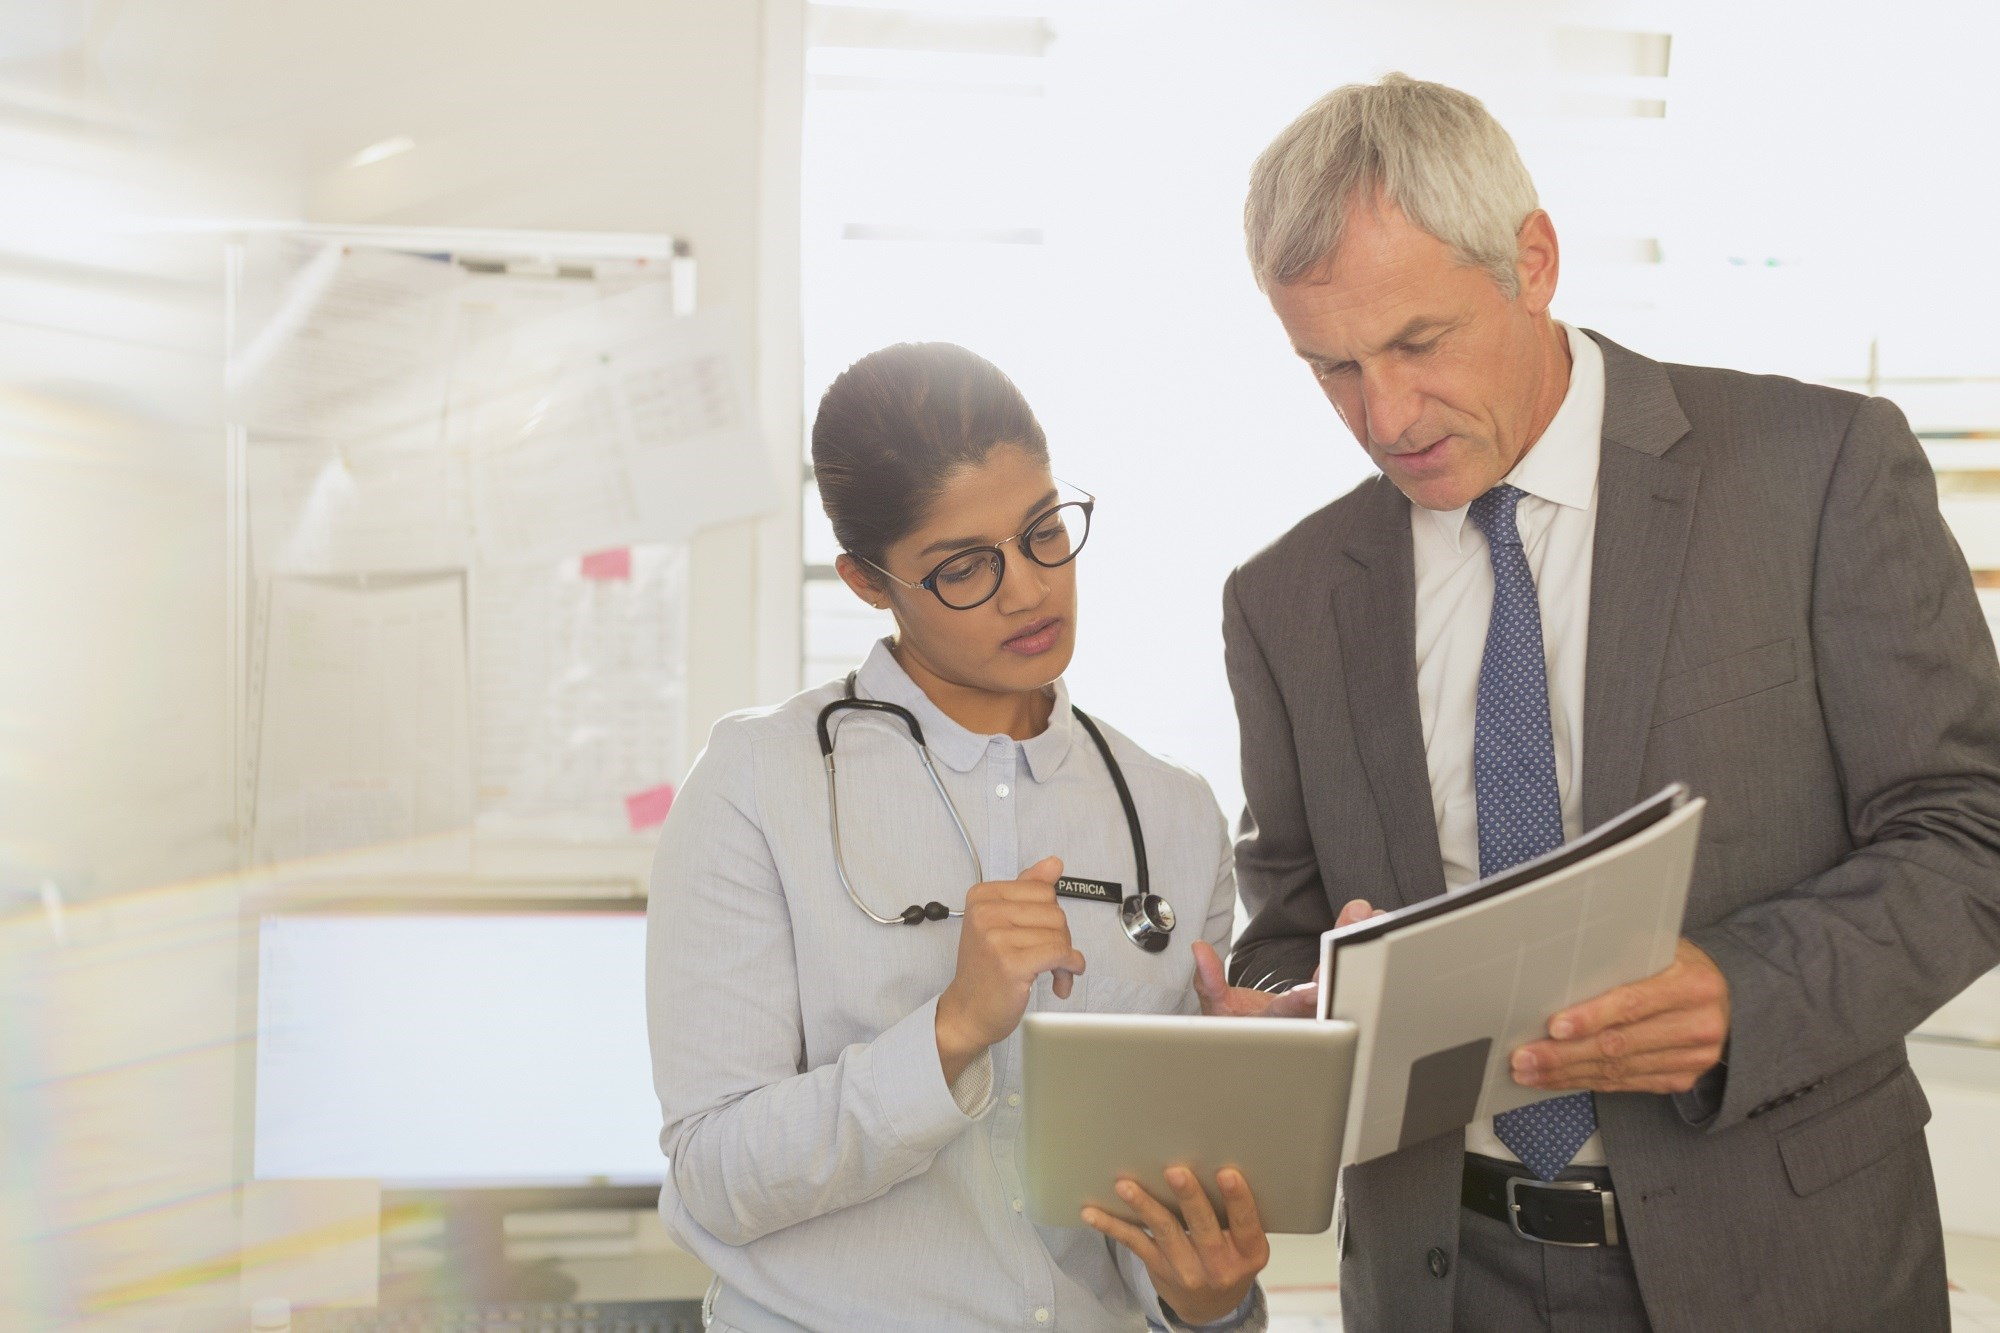 Having a Master of Business Administration degree an help doctors with important, practice-related decisions.